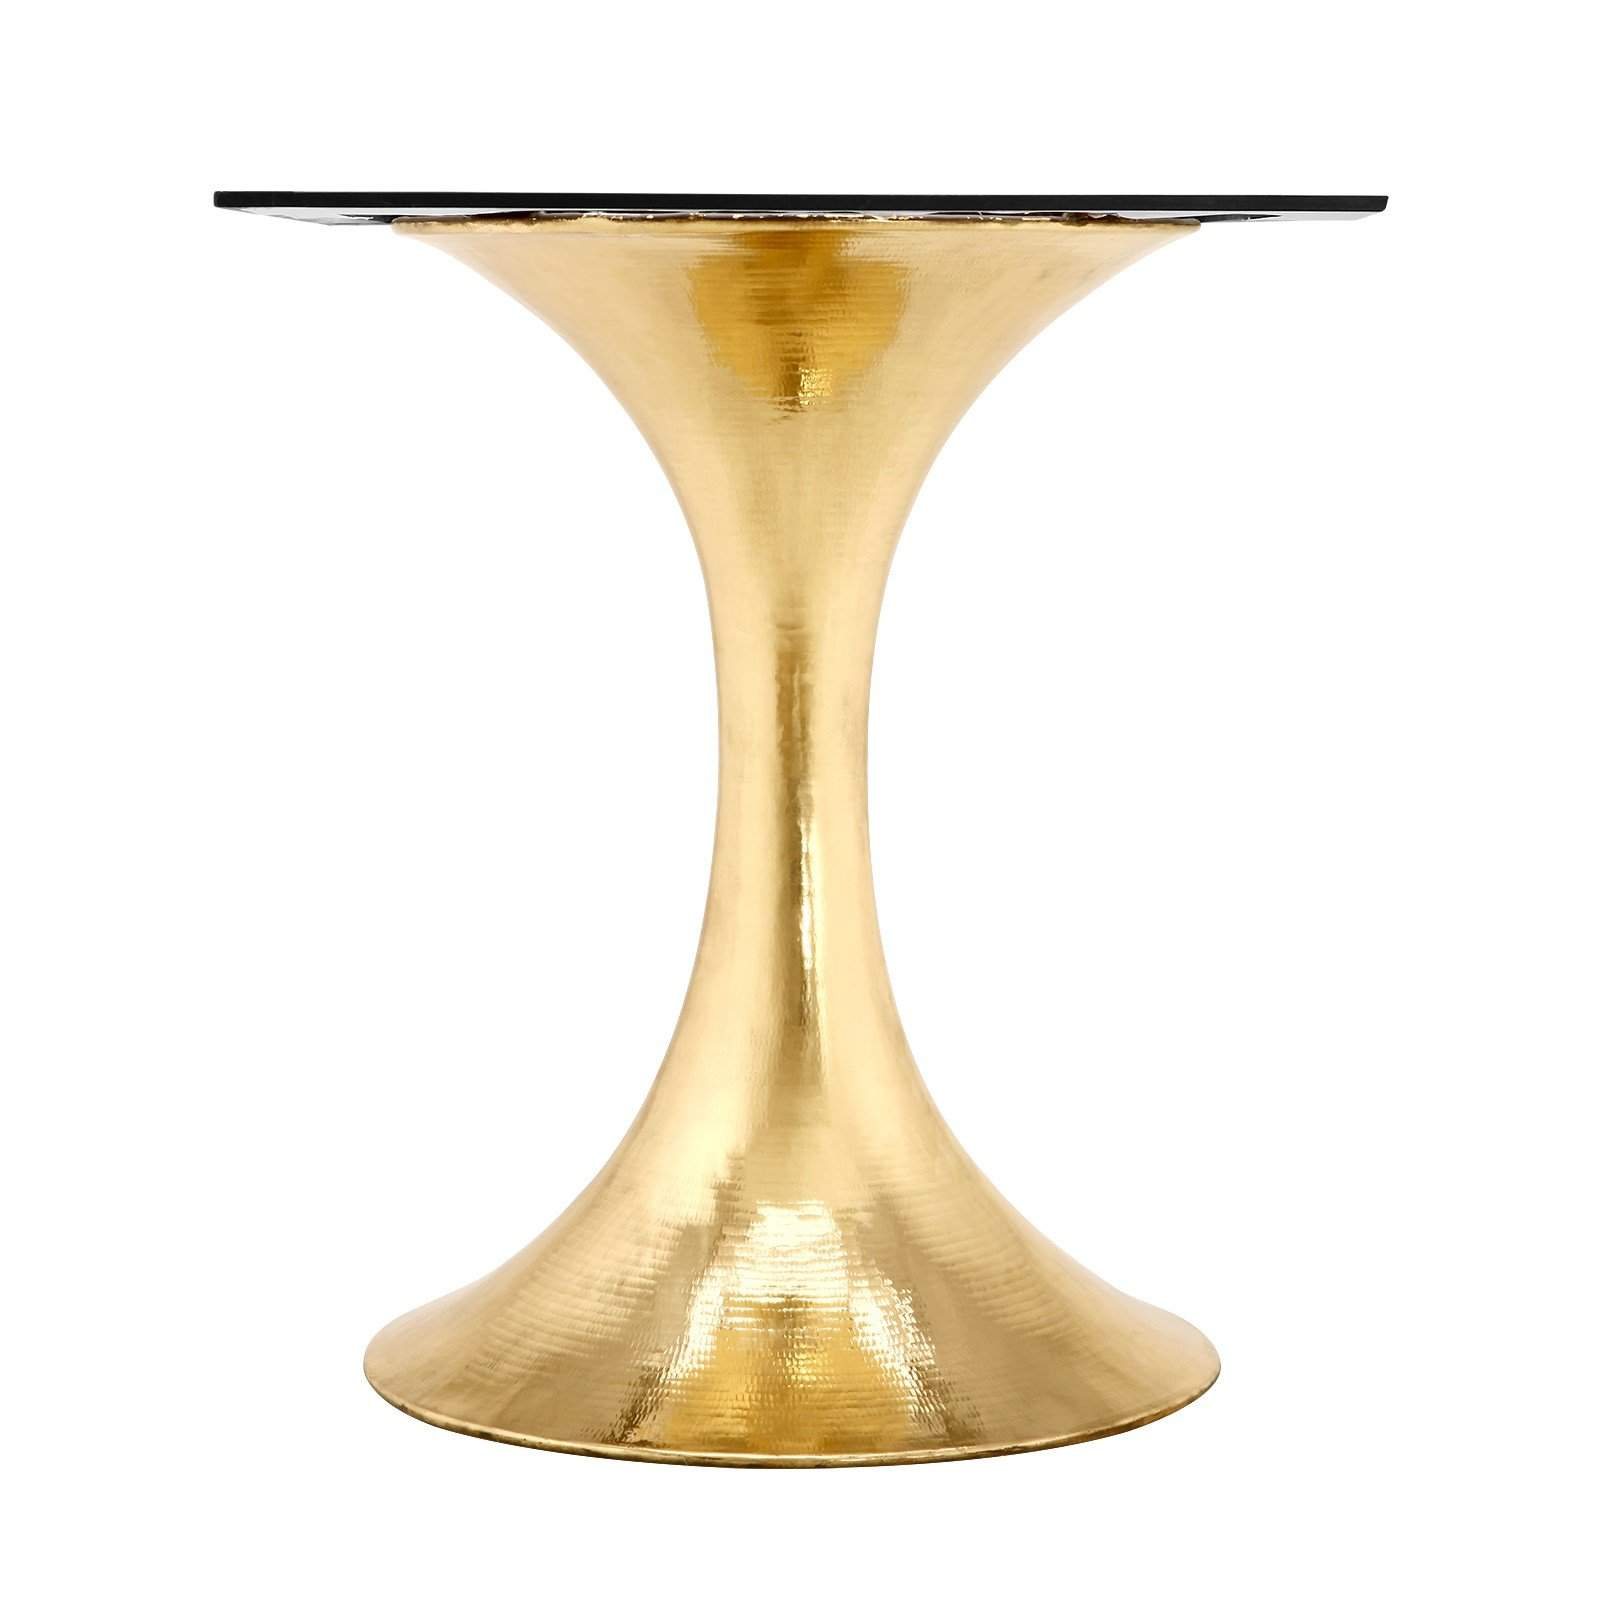 "Bungalow 5 - STOCKHOLM BRASS DINING TABLE BASE (PAIRS WITH 52"" & 60"" TOP, SOLD SEPARATELY) in BRASS"